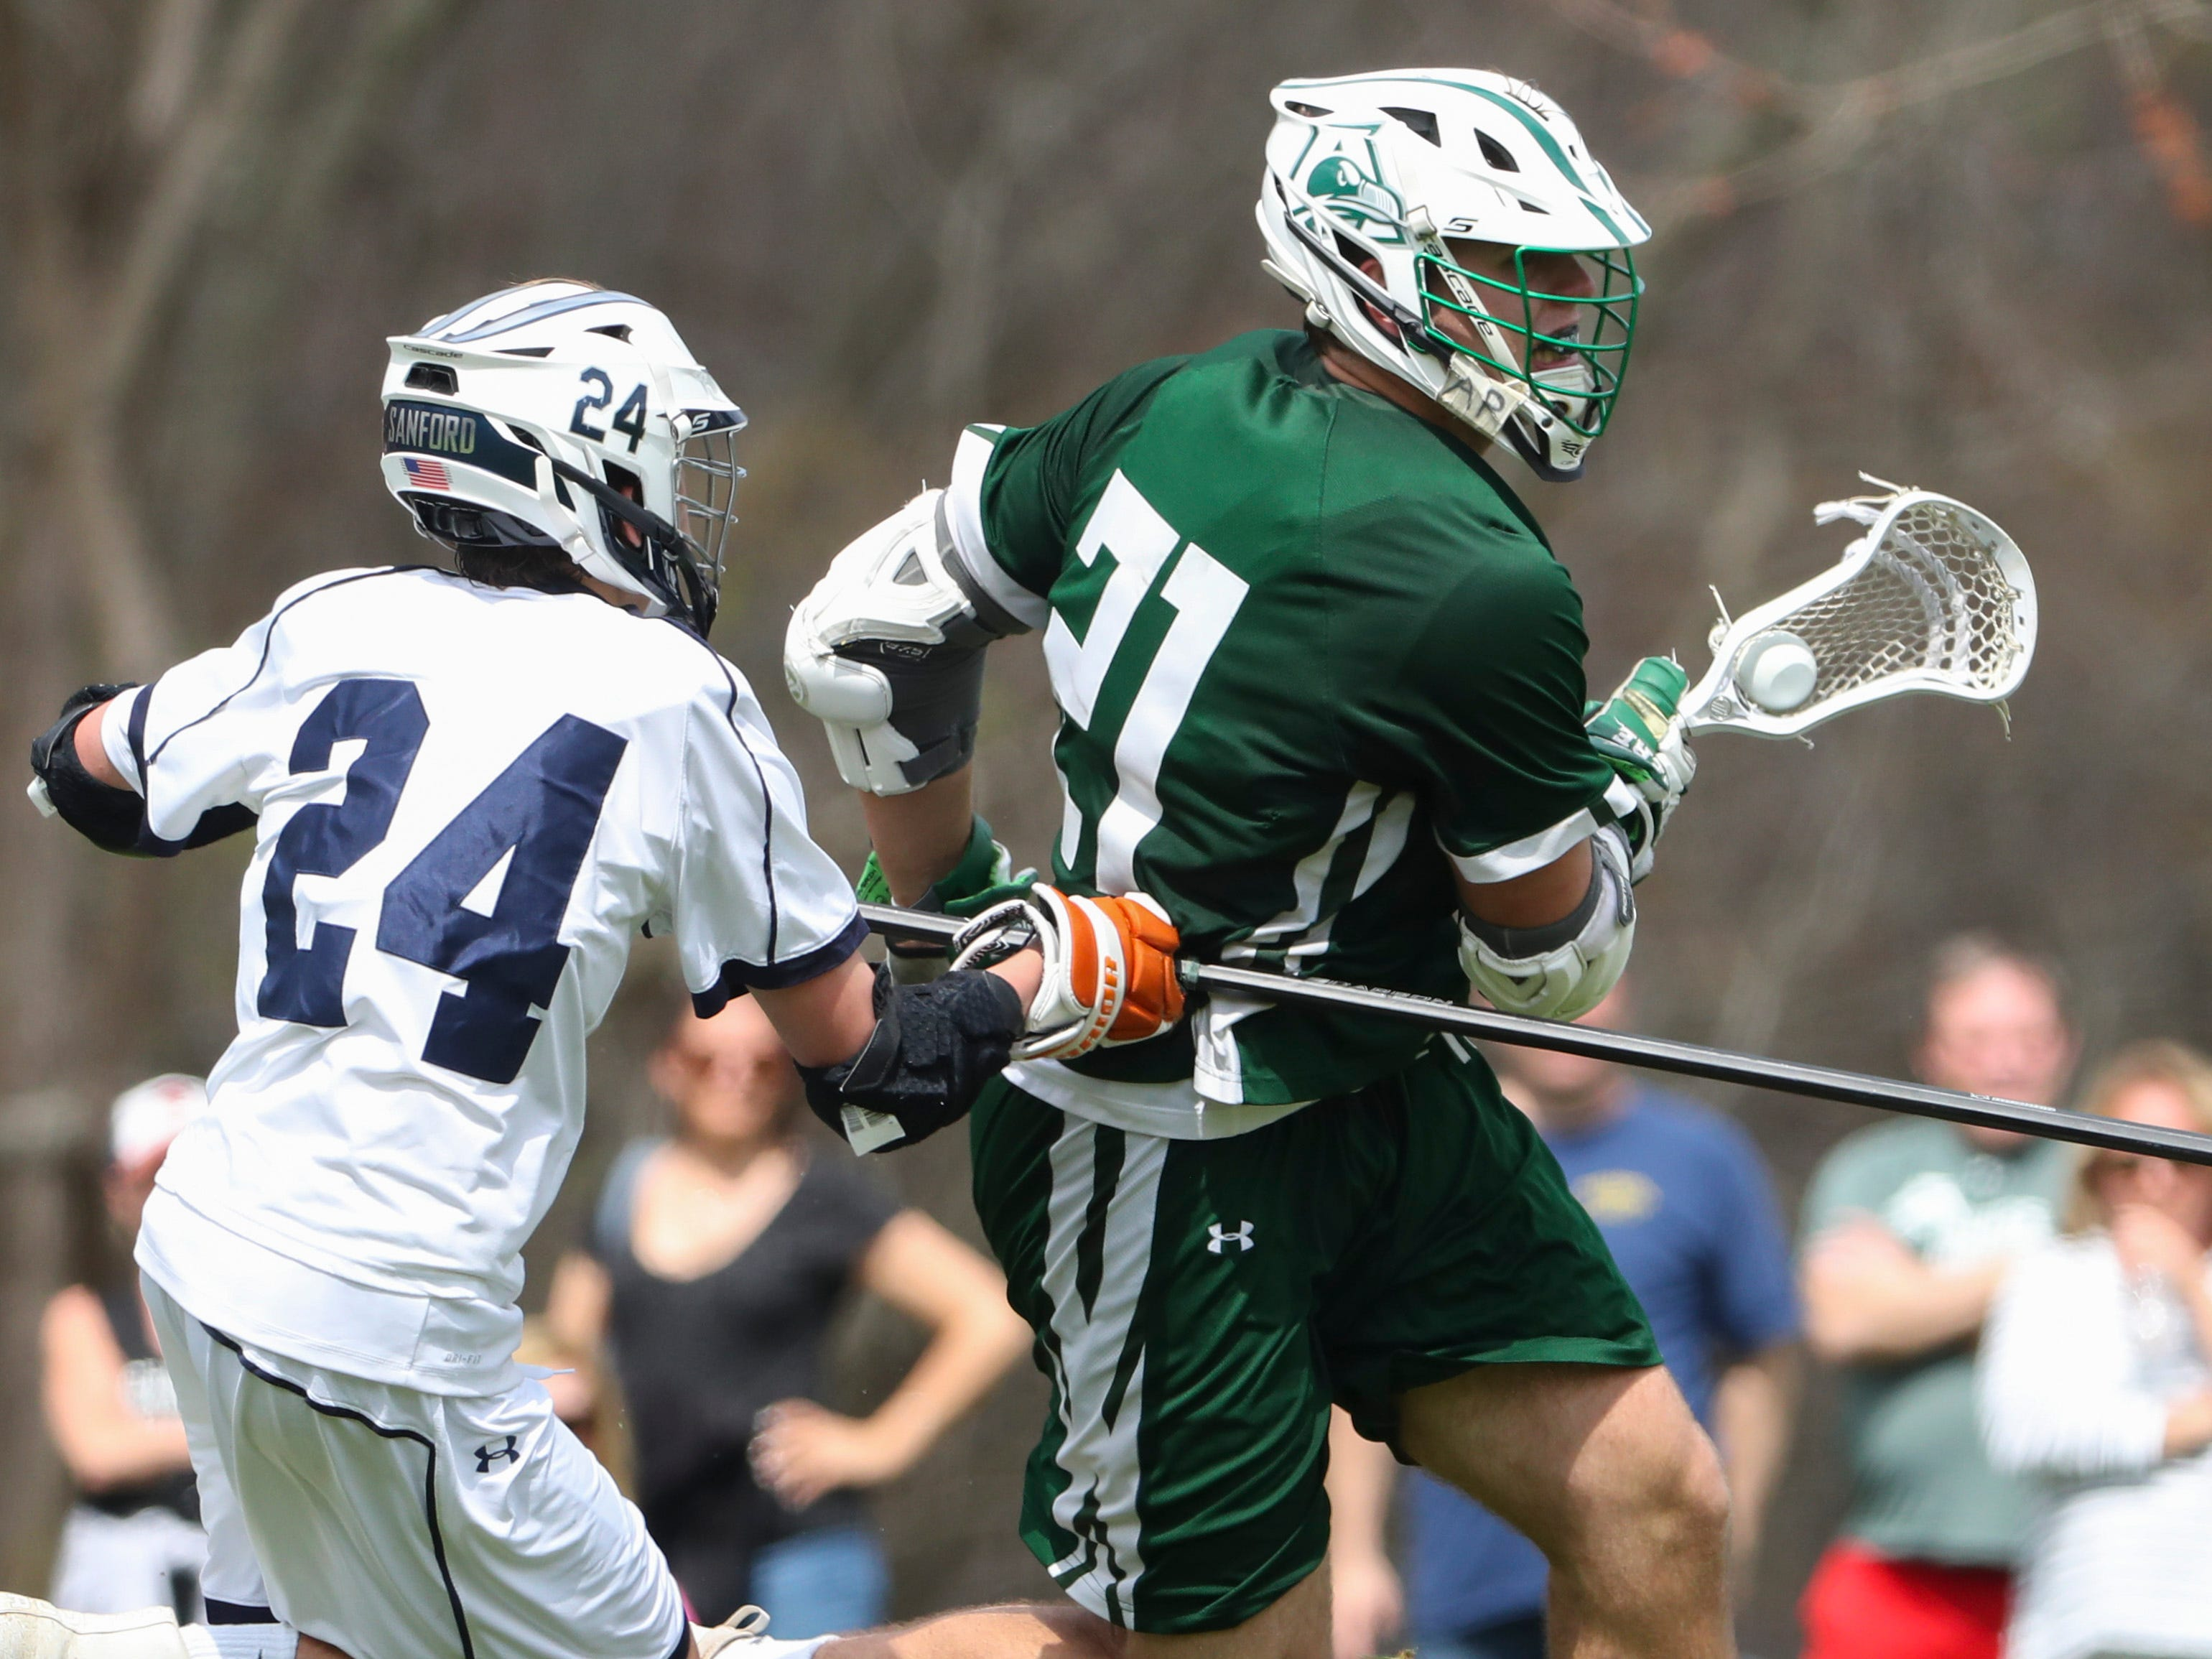 Archmere's Mitch Moyer moves the ball ahead of Sanford's Dominic Pompeii in the second half of Sanford's 12-10 win Saturday.